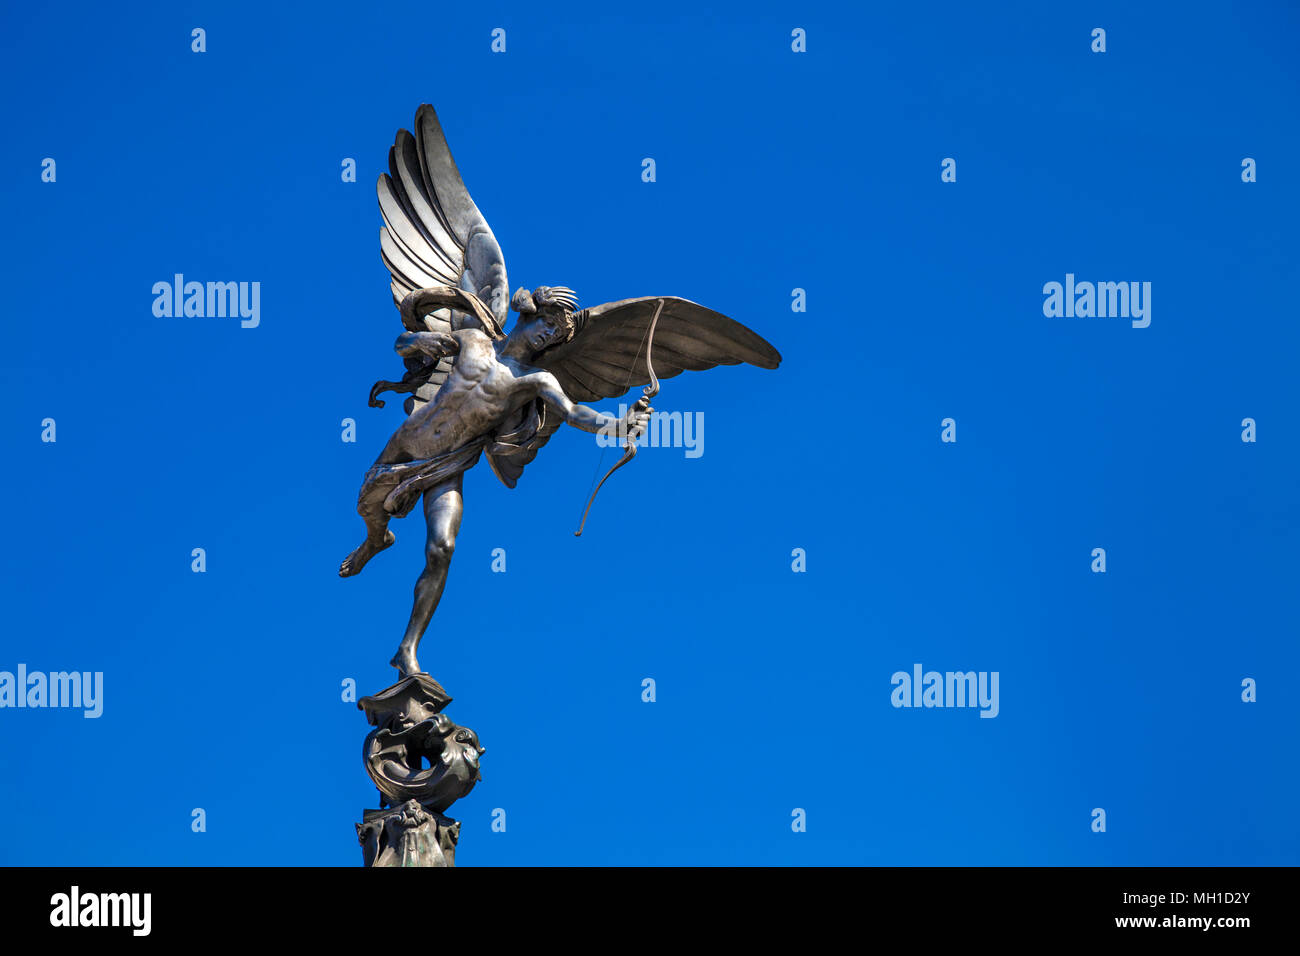 Statue of the Greek god Anteros by Alfred Gilbert on top of the Shaftesbury Memorial Fountain in Piccadilly Circus, London, UK - Stock Image